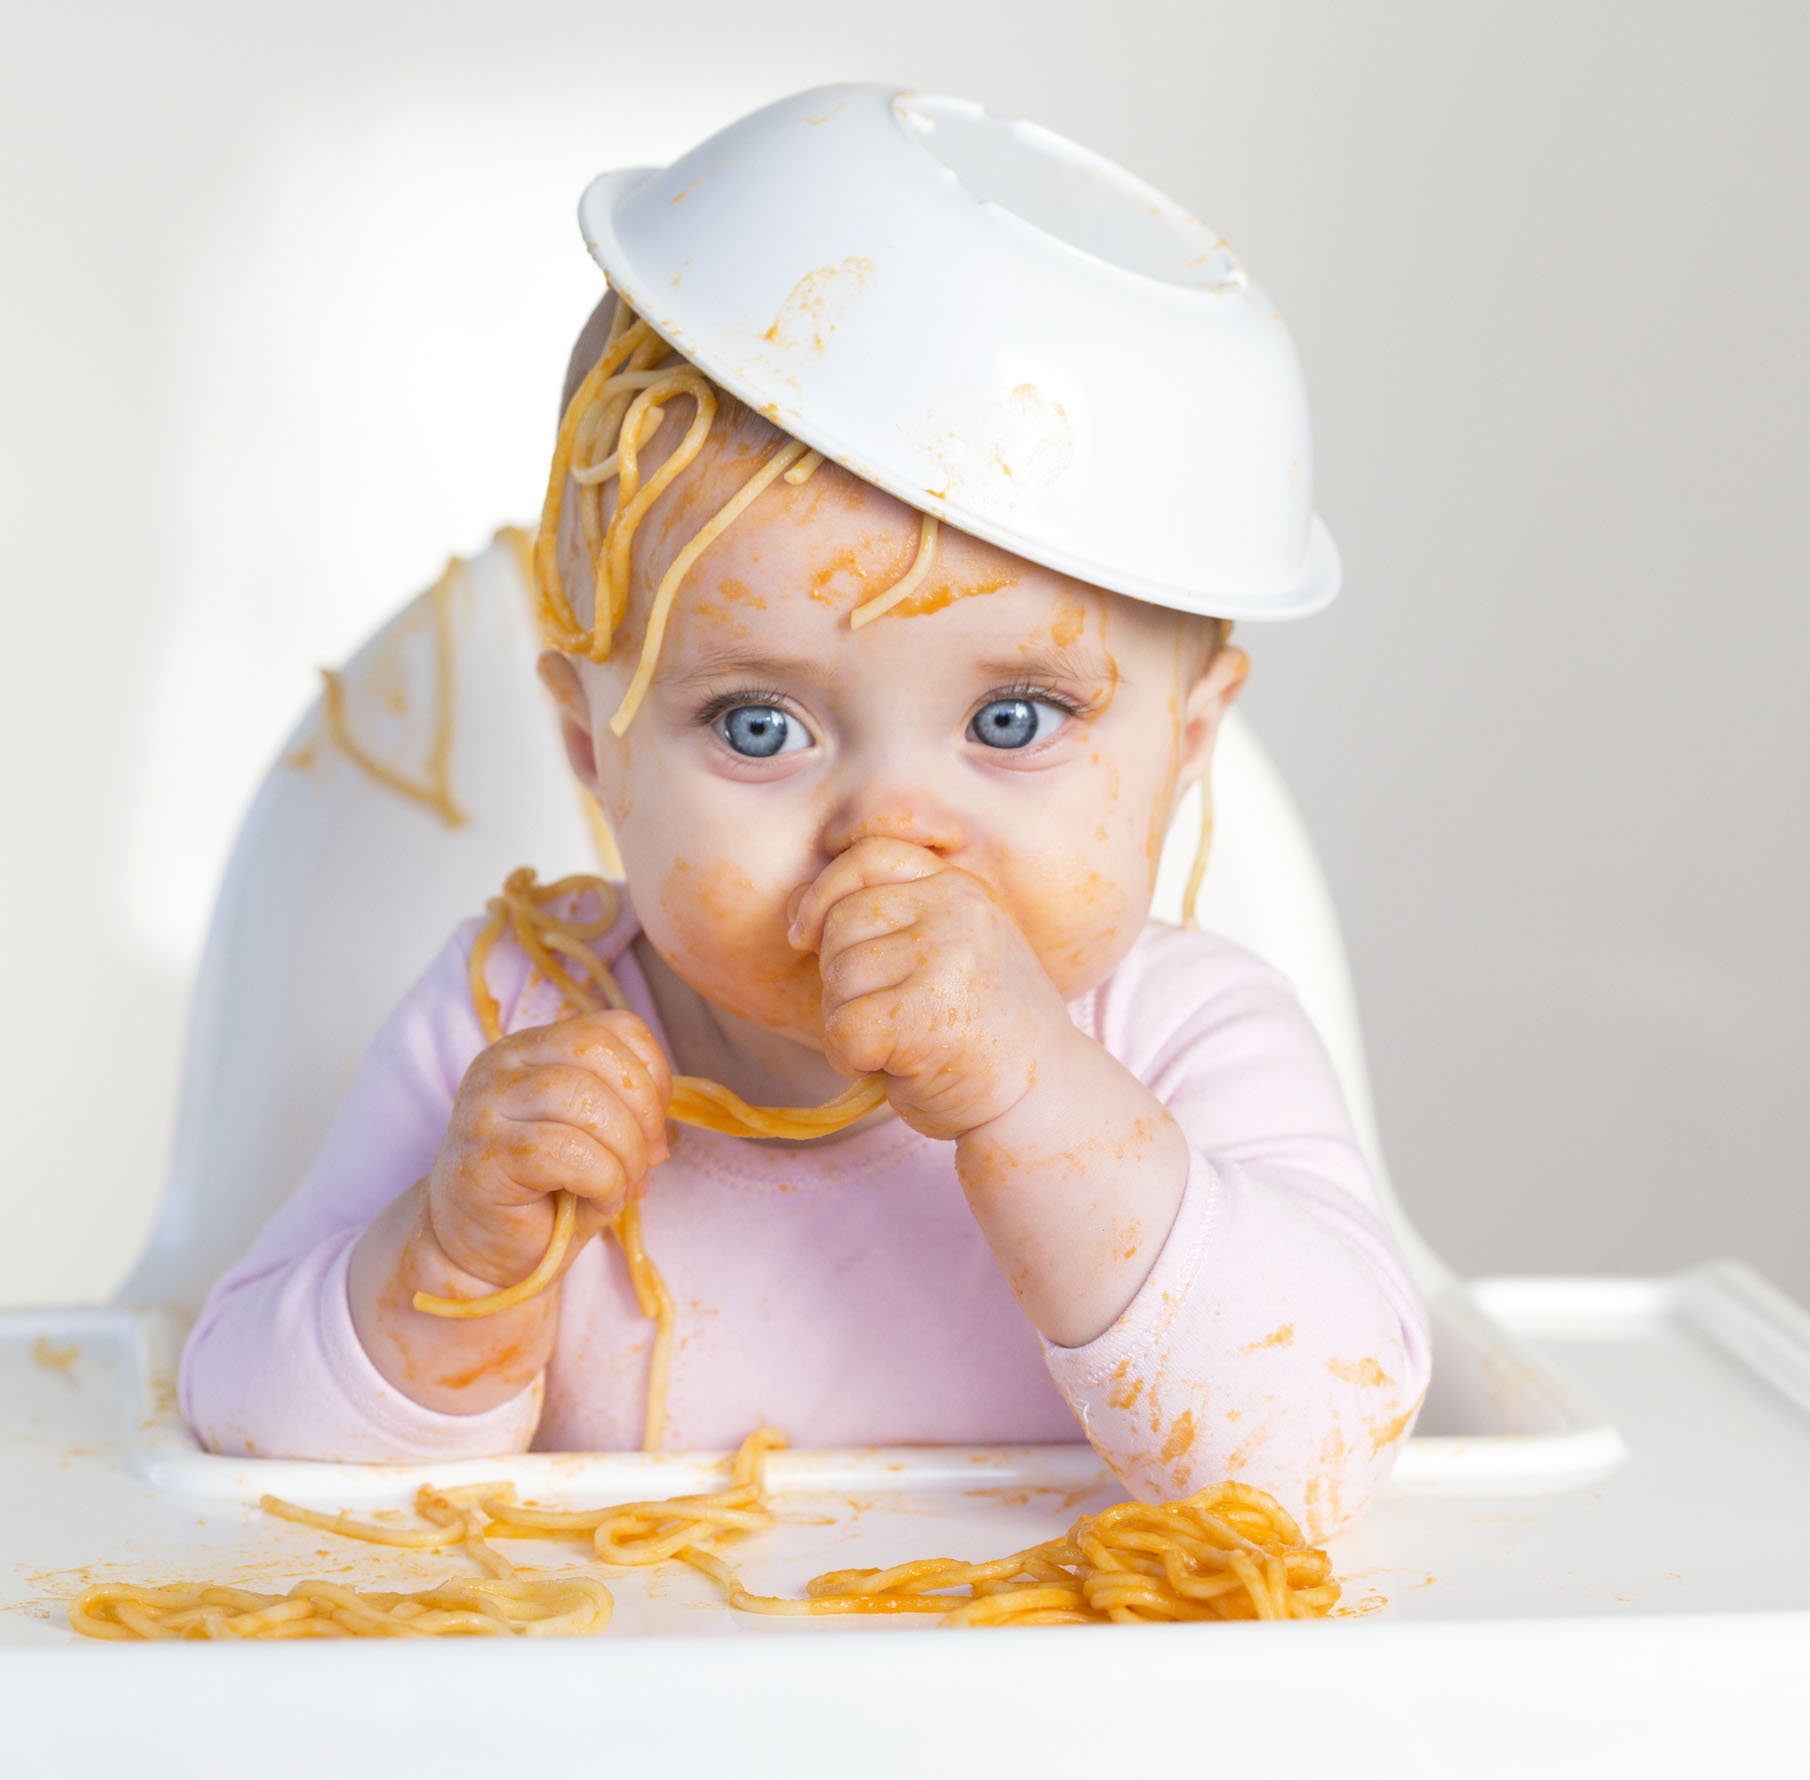 Foodies with Kids